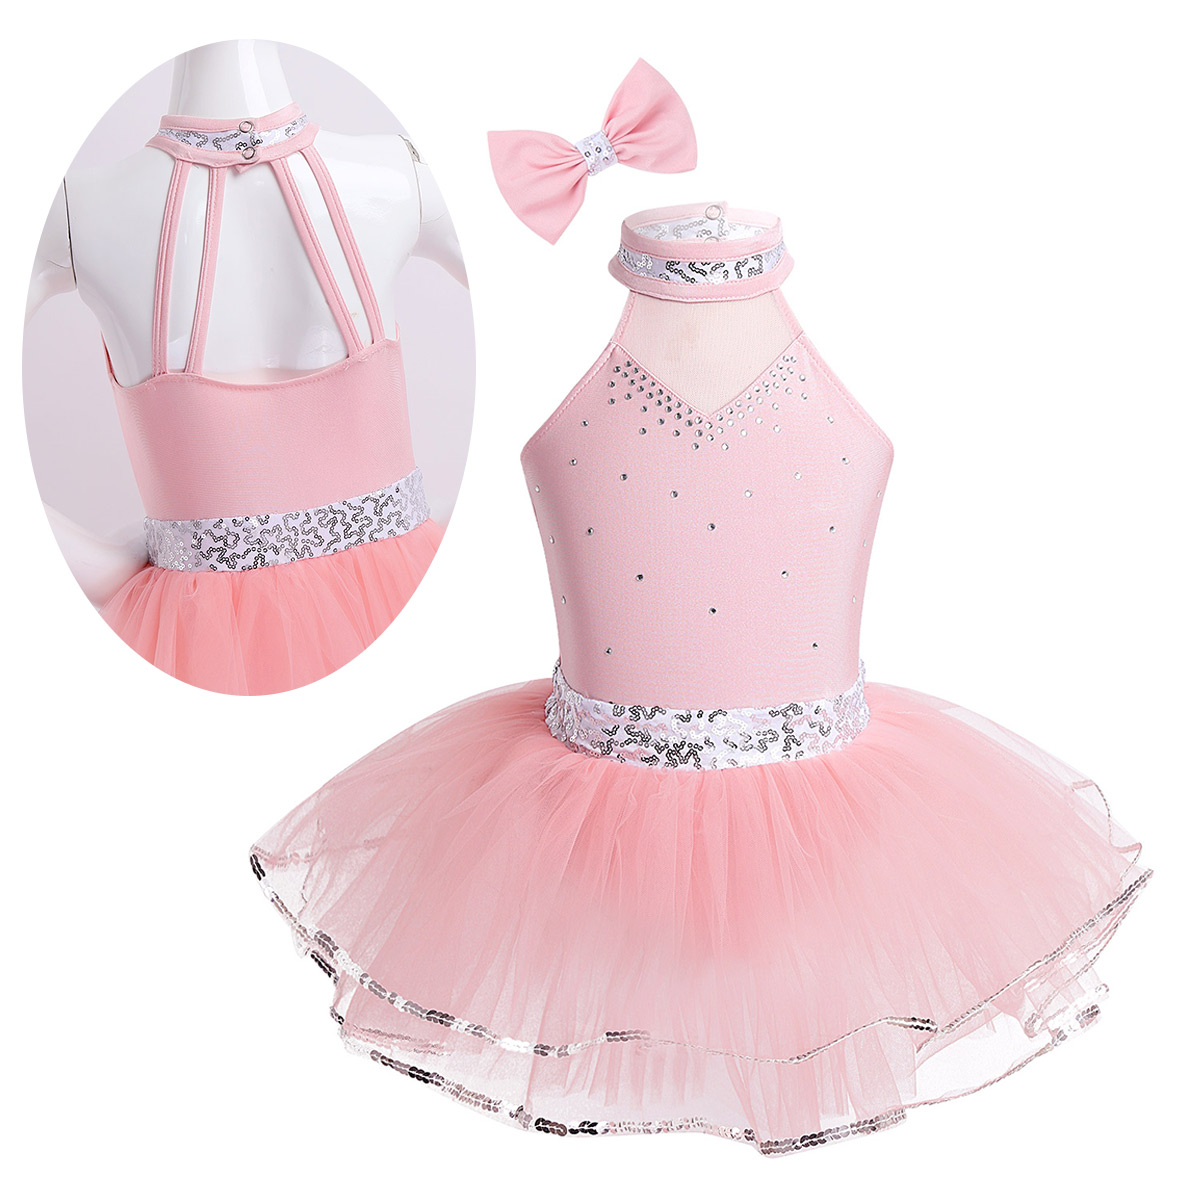 Children Kids Girls Ballet Tutu Professional Halter Sparkly Ballet Child Girls Ballet Dress Ballet For Costumes Balarina Party